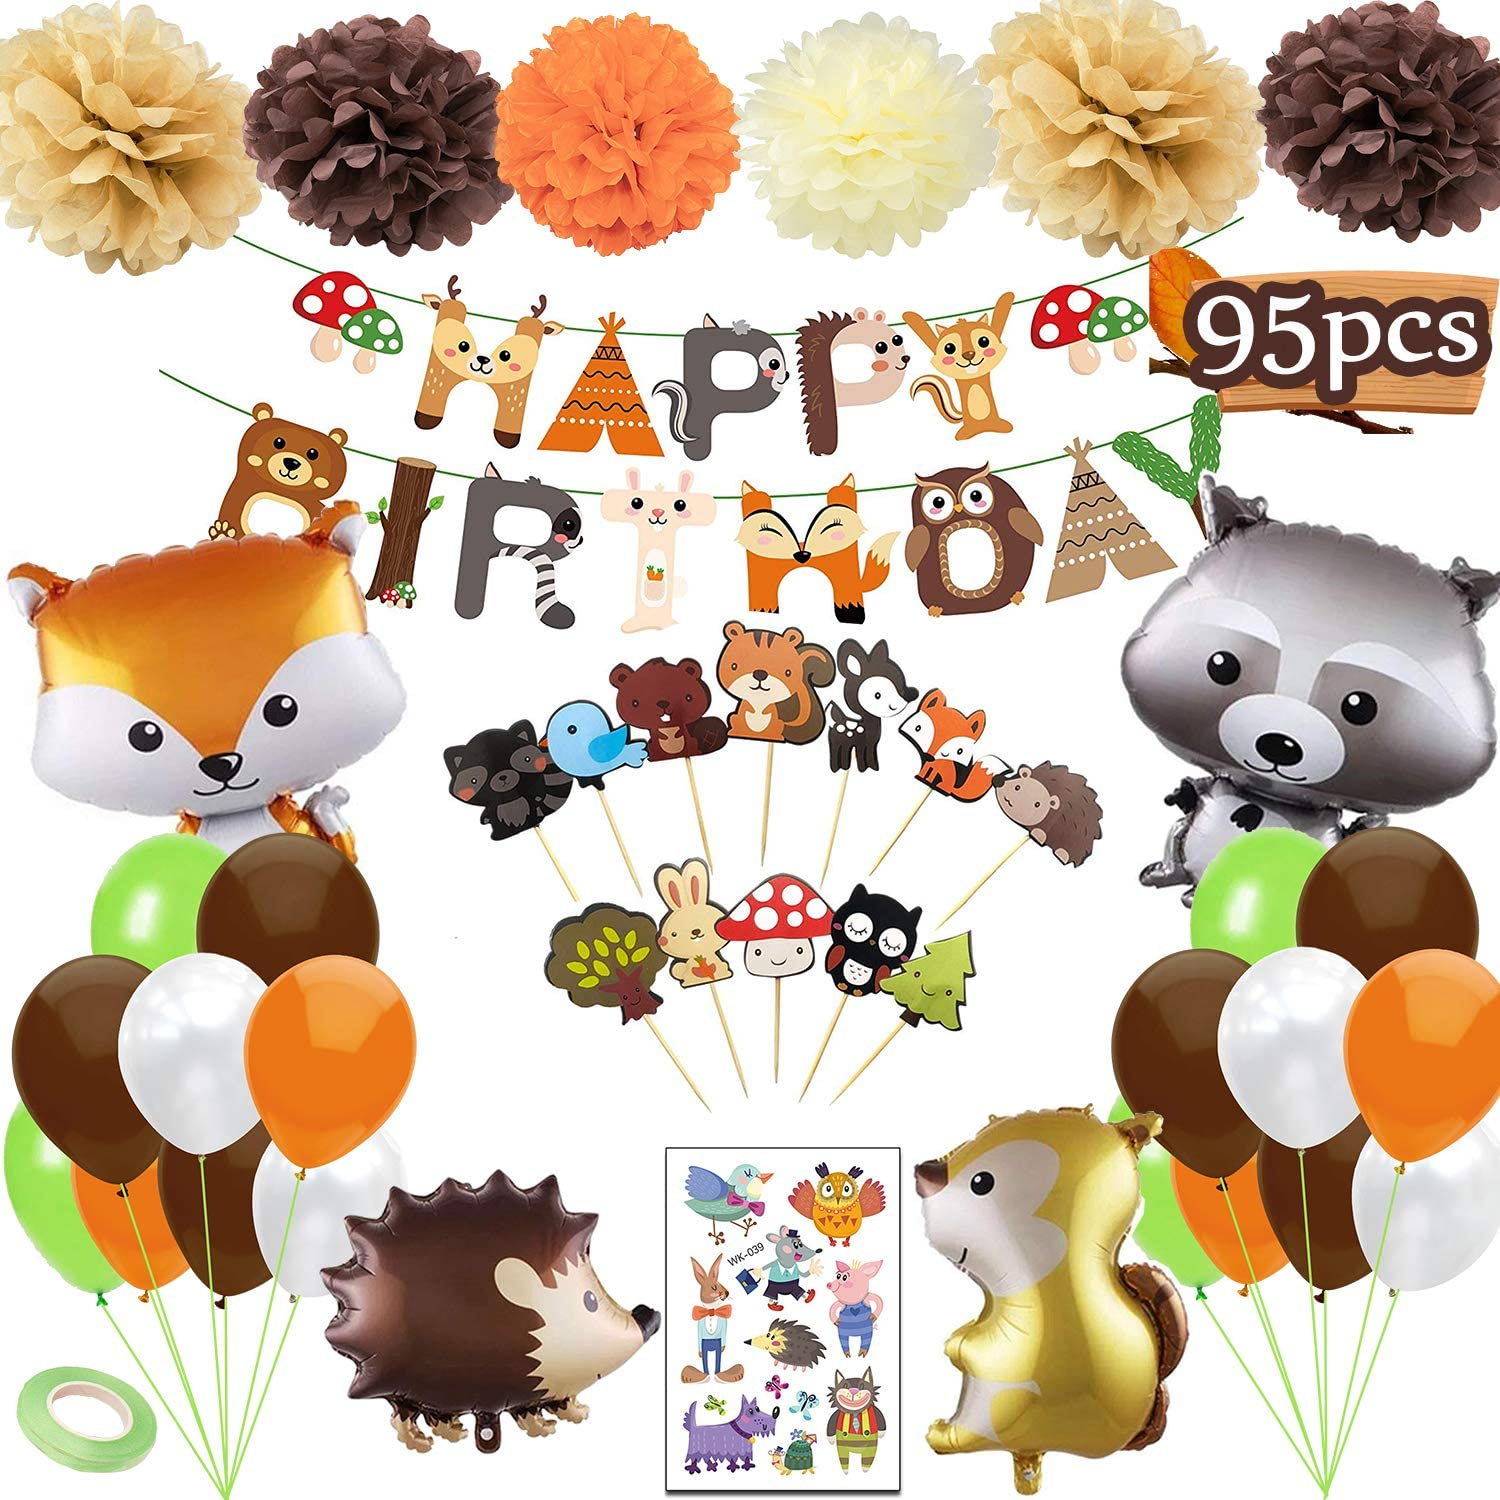 Funnlot Woodland Baby Shower Decorations 95PCS Woodland Party Supplies Woodland Party Decorations Including Happy Birthday Banners Woodland Party Balloons